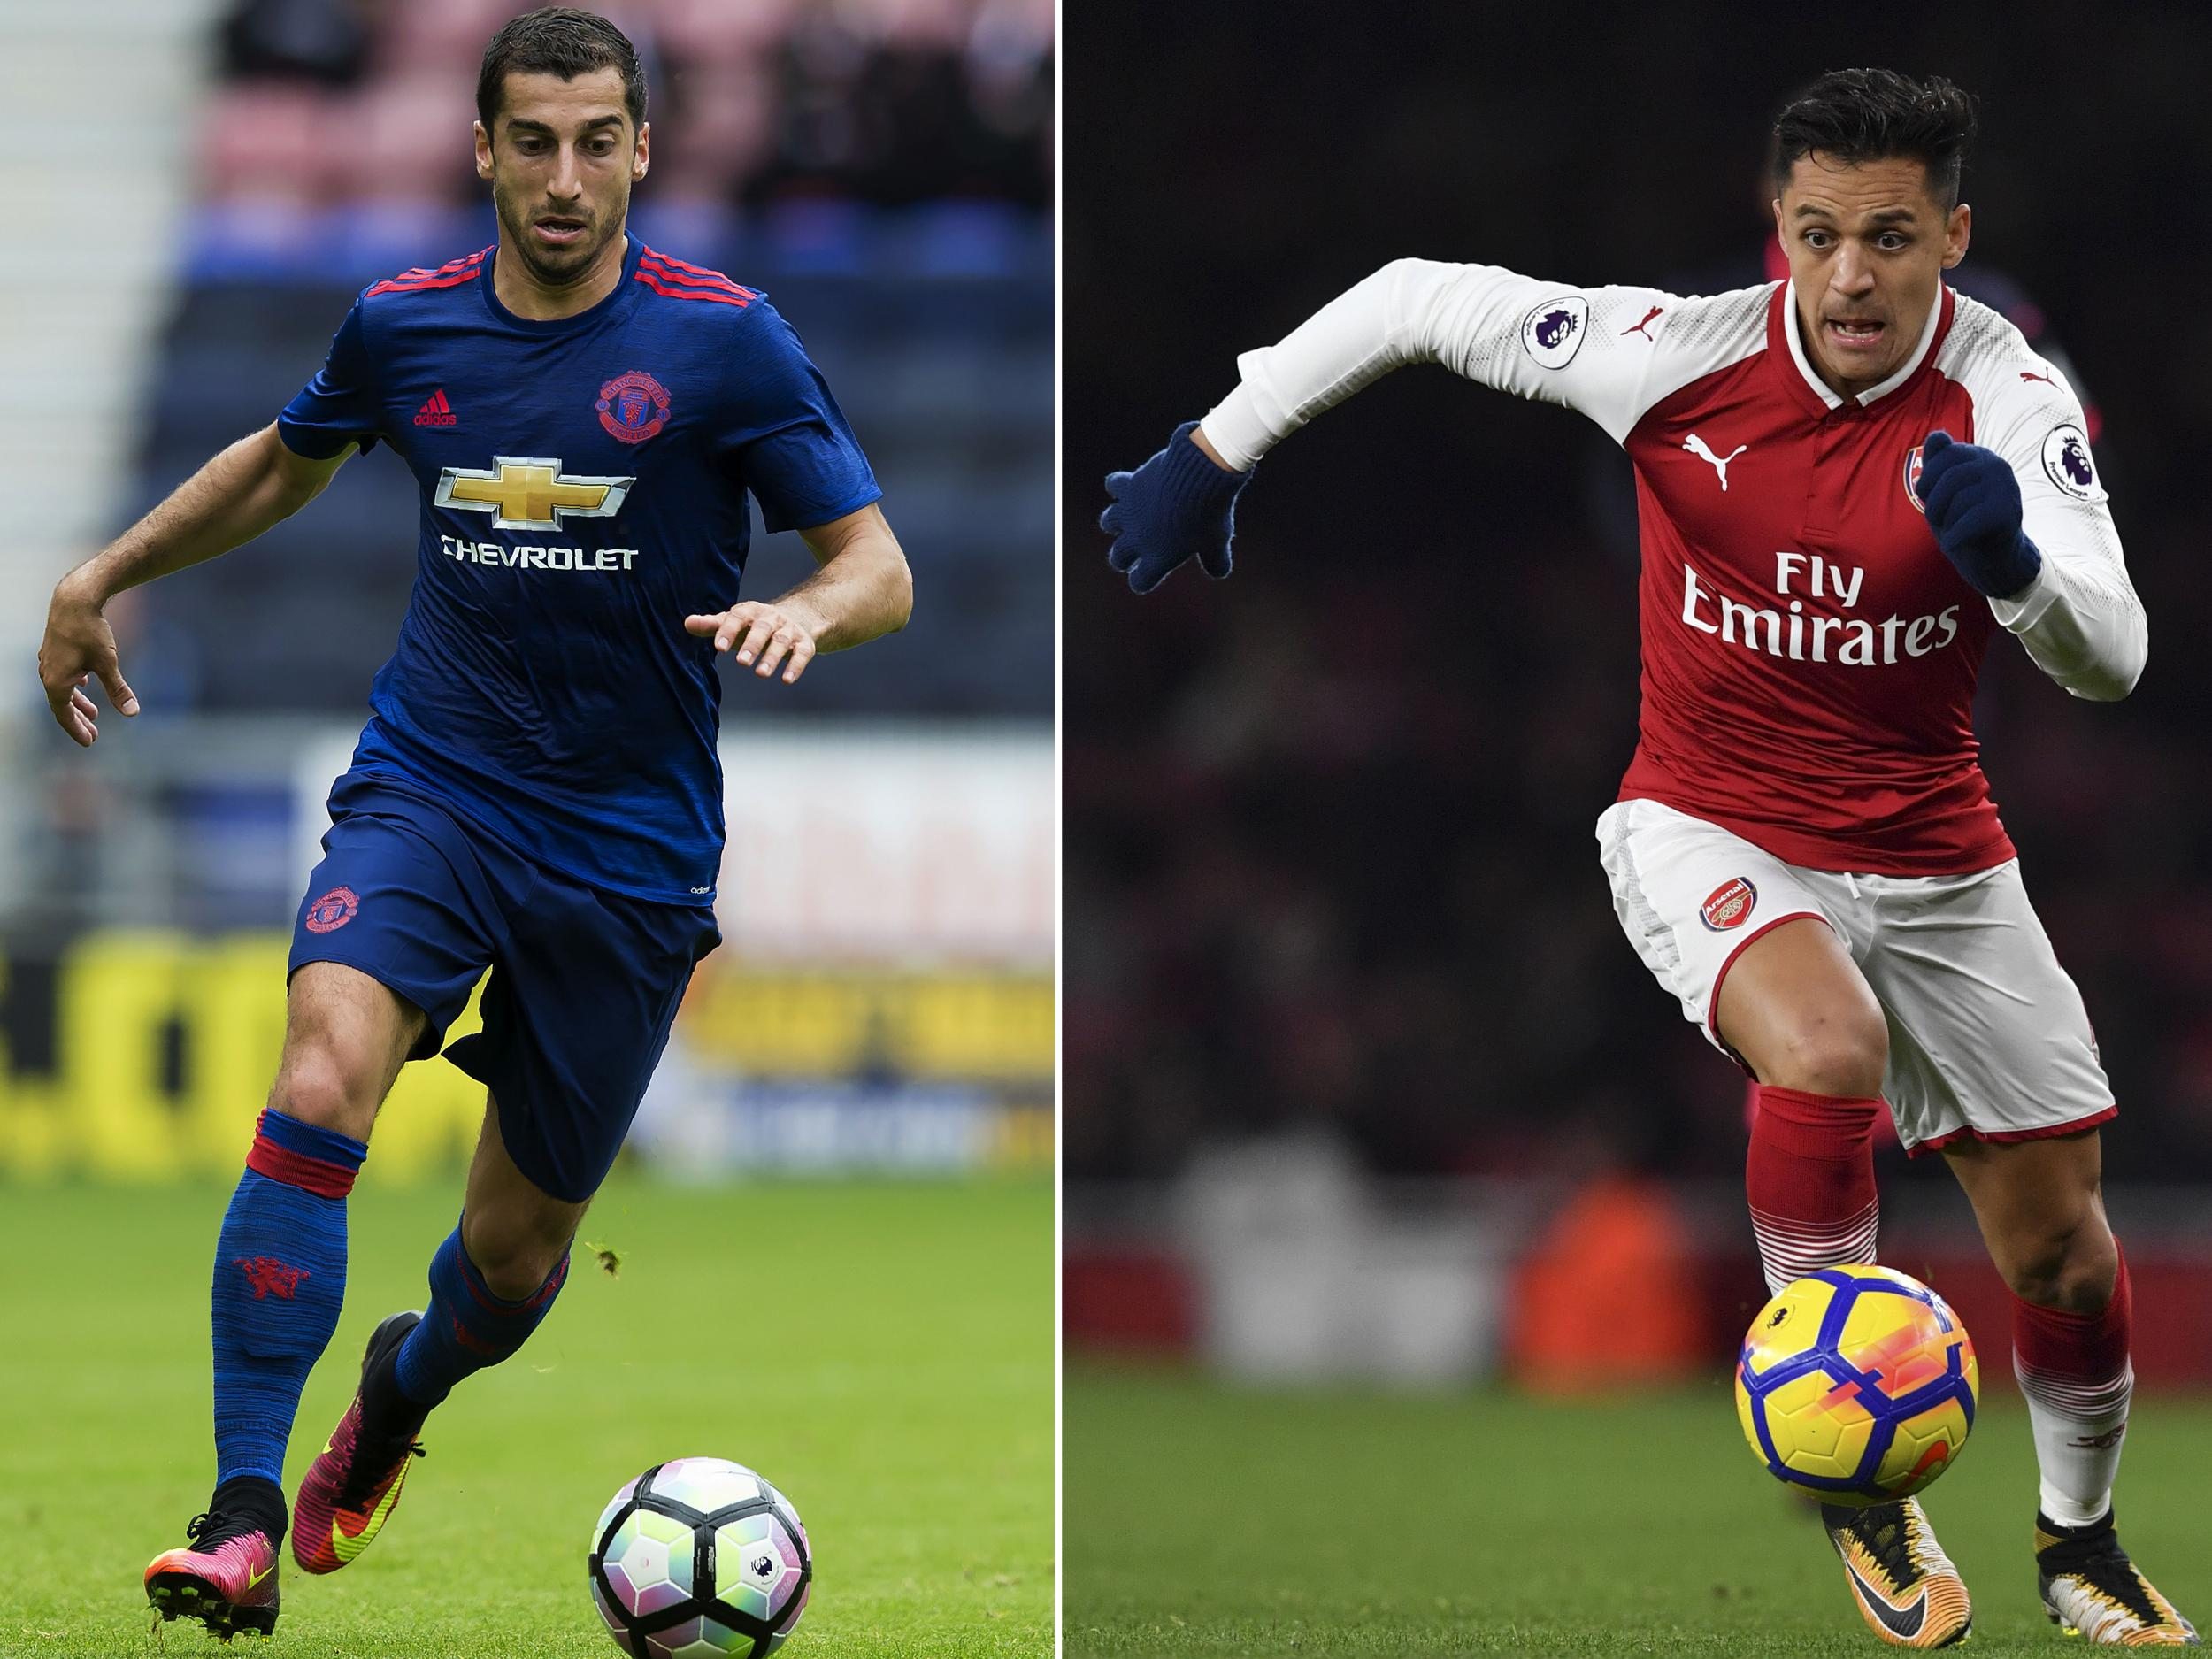 Transfer news LIVE: Alexis Sanchez in Manchester United shirt, Arsenal fly in for Aubameyang, Liverpool latest